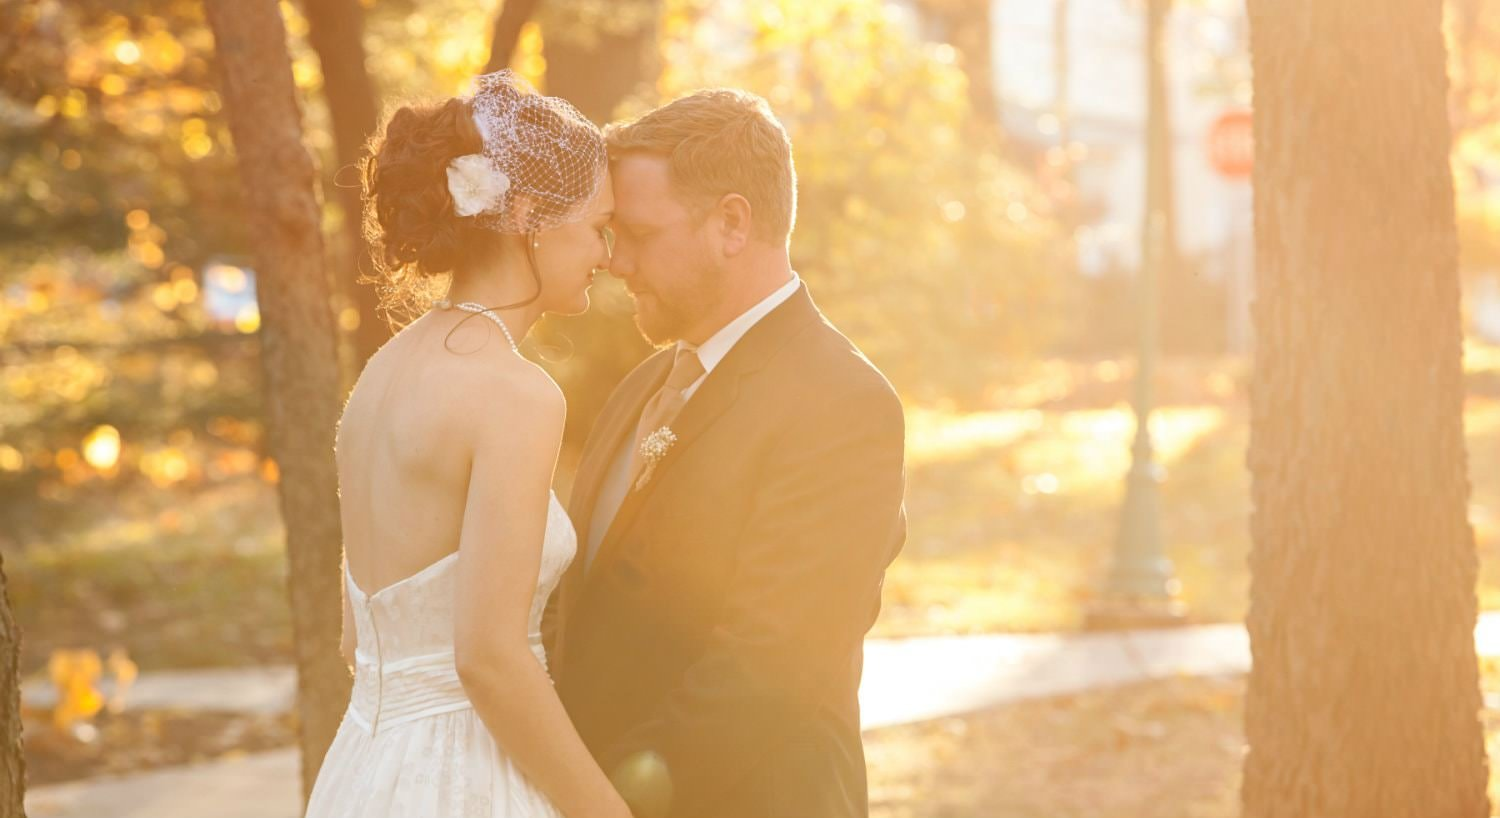 Bride in white dress holding hands, head to head with groom with diffused light and autumn trees in background